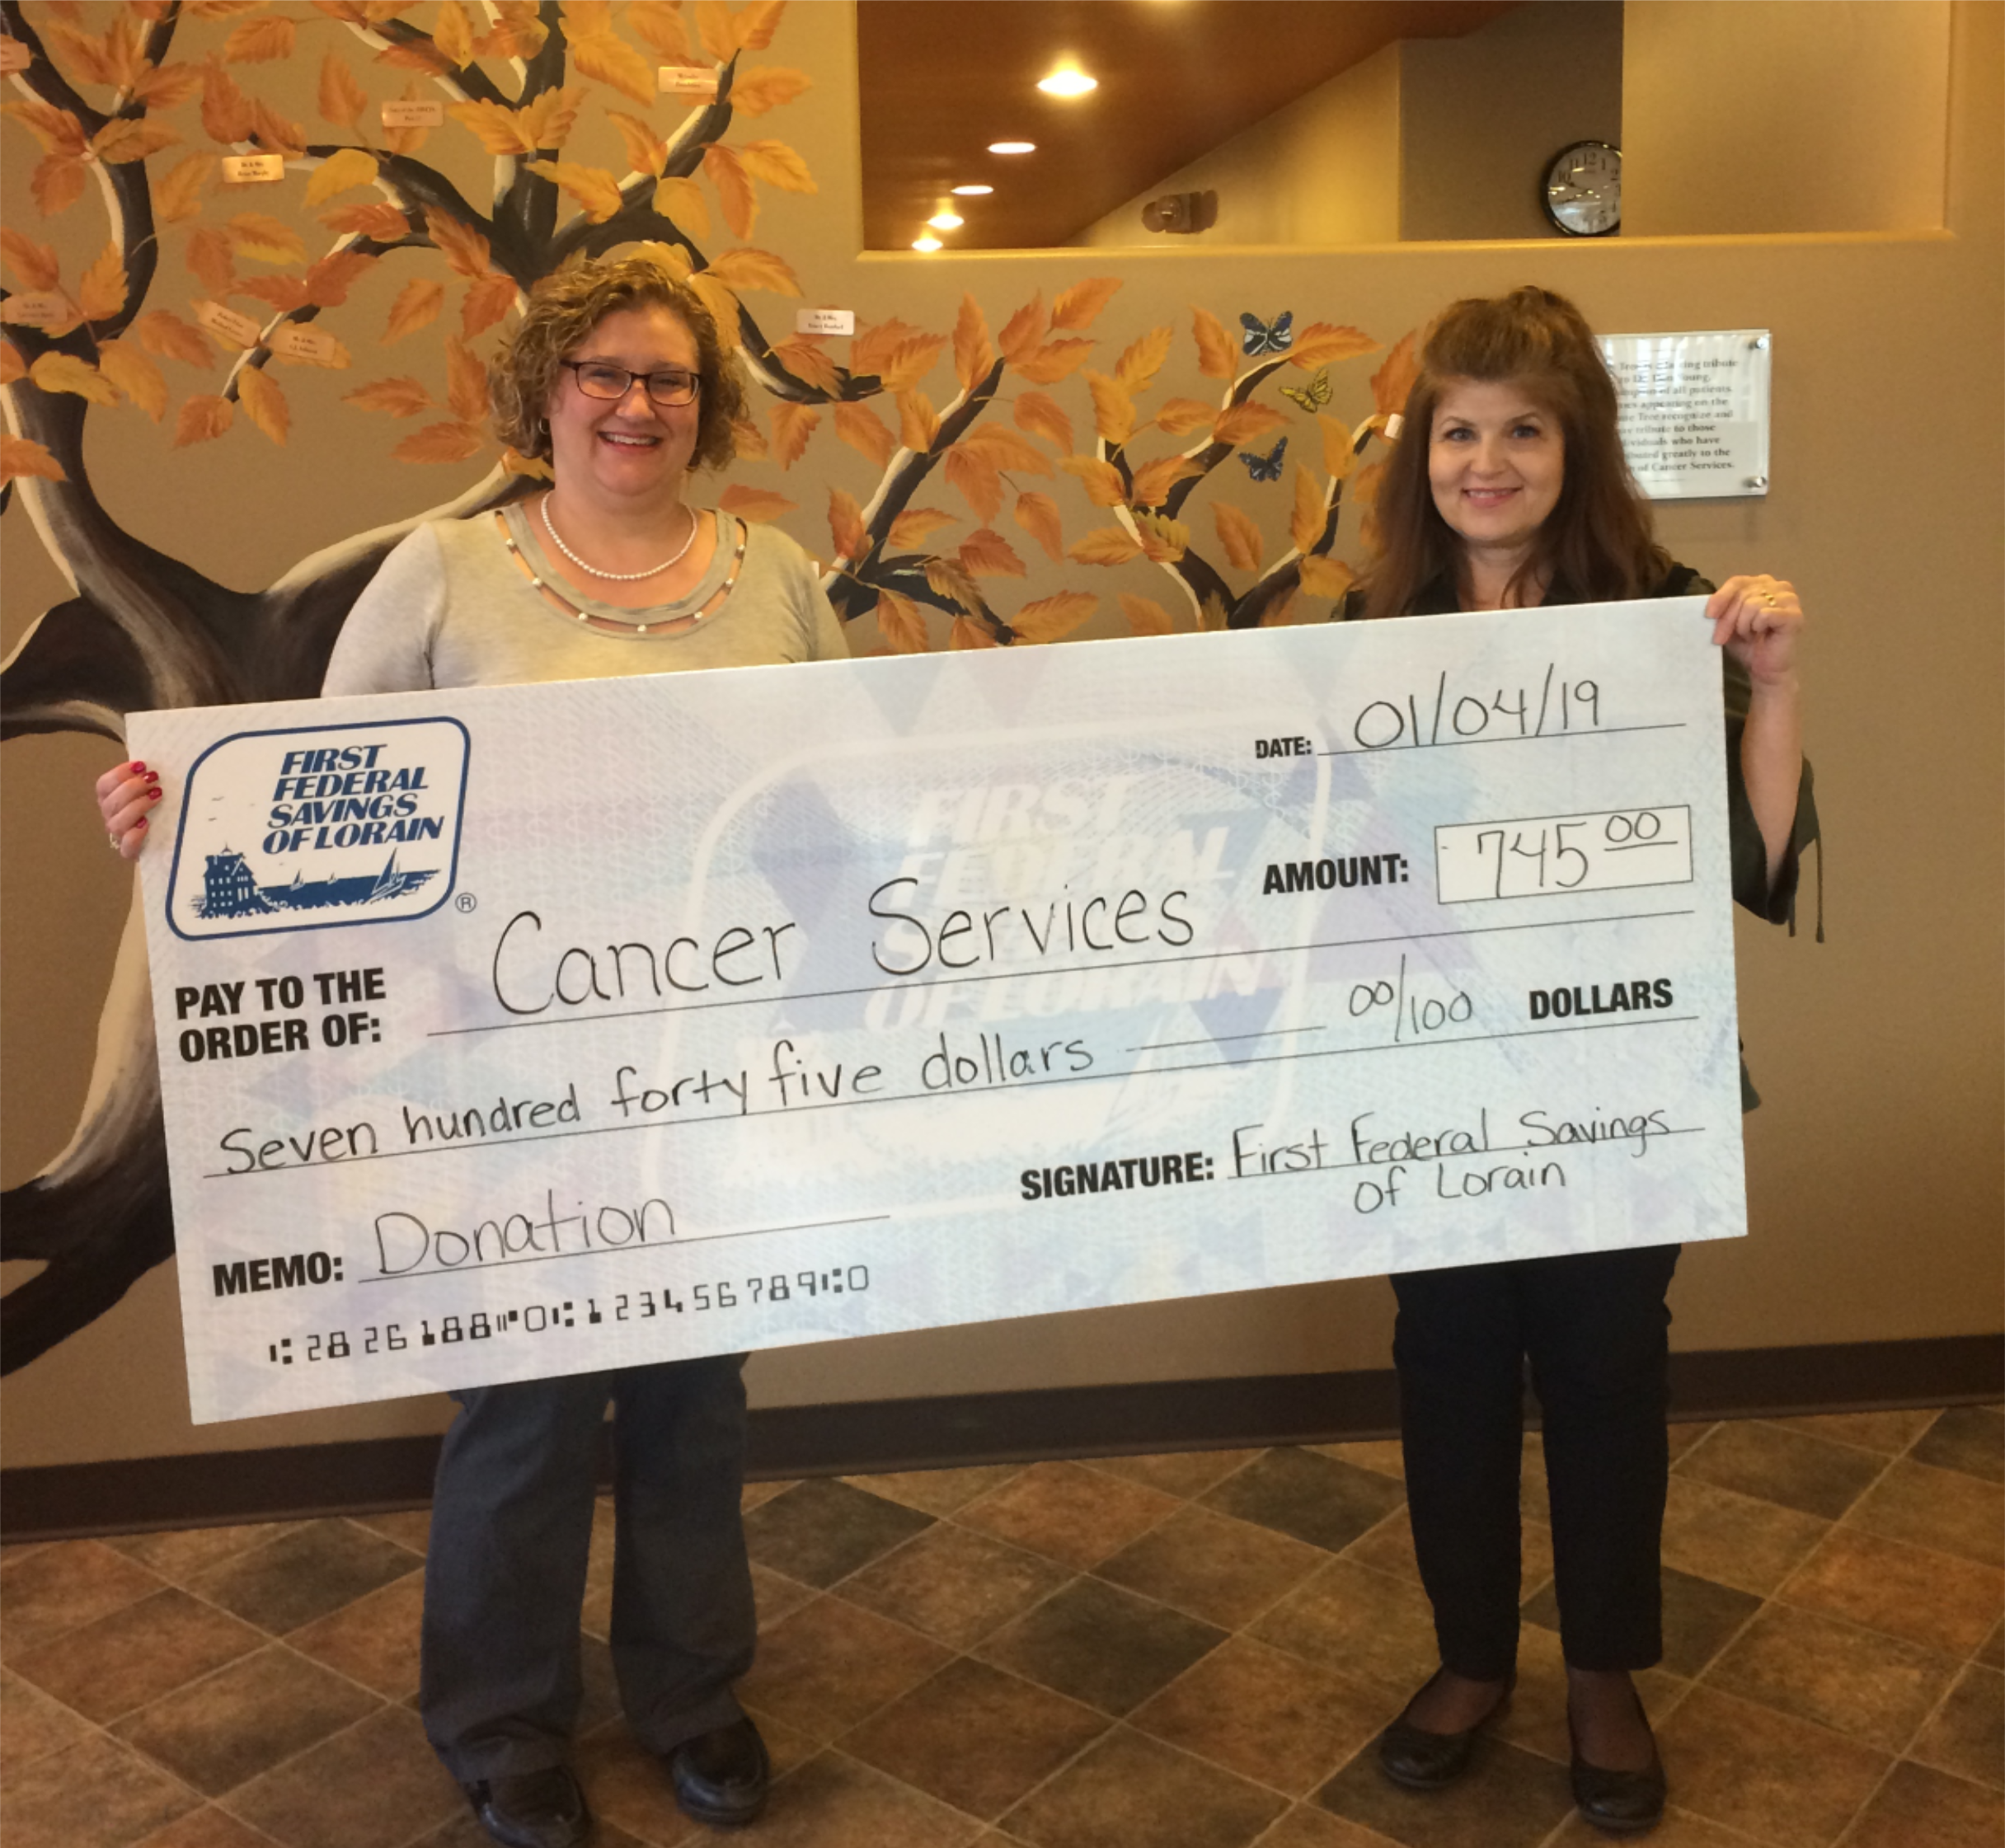 Cancer Services Donation